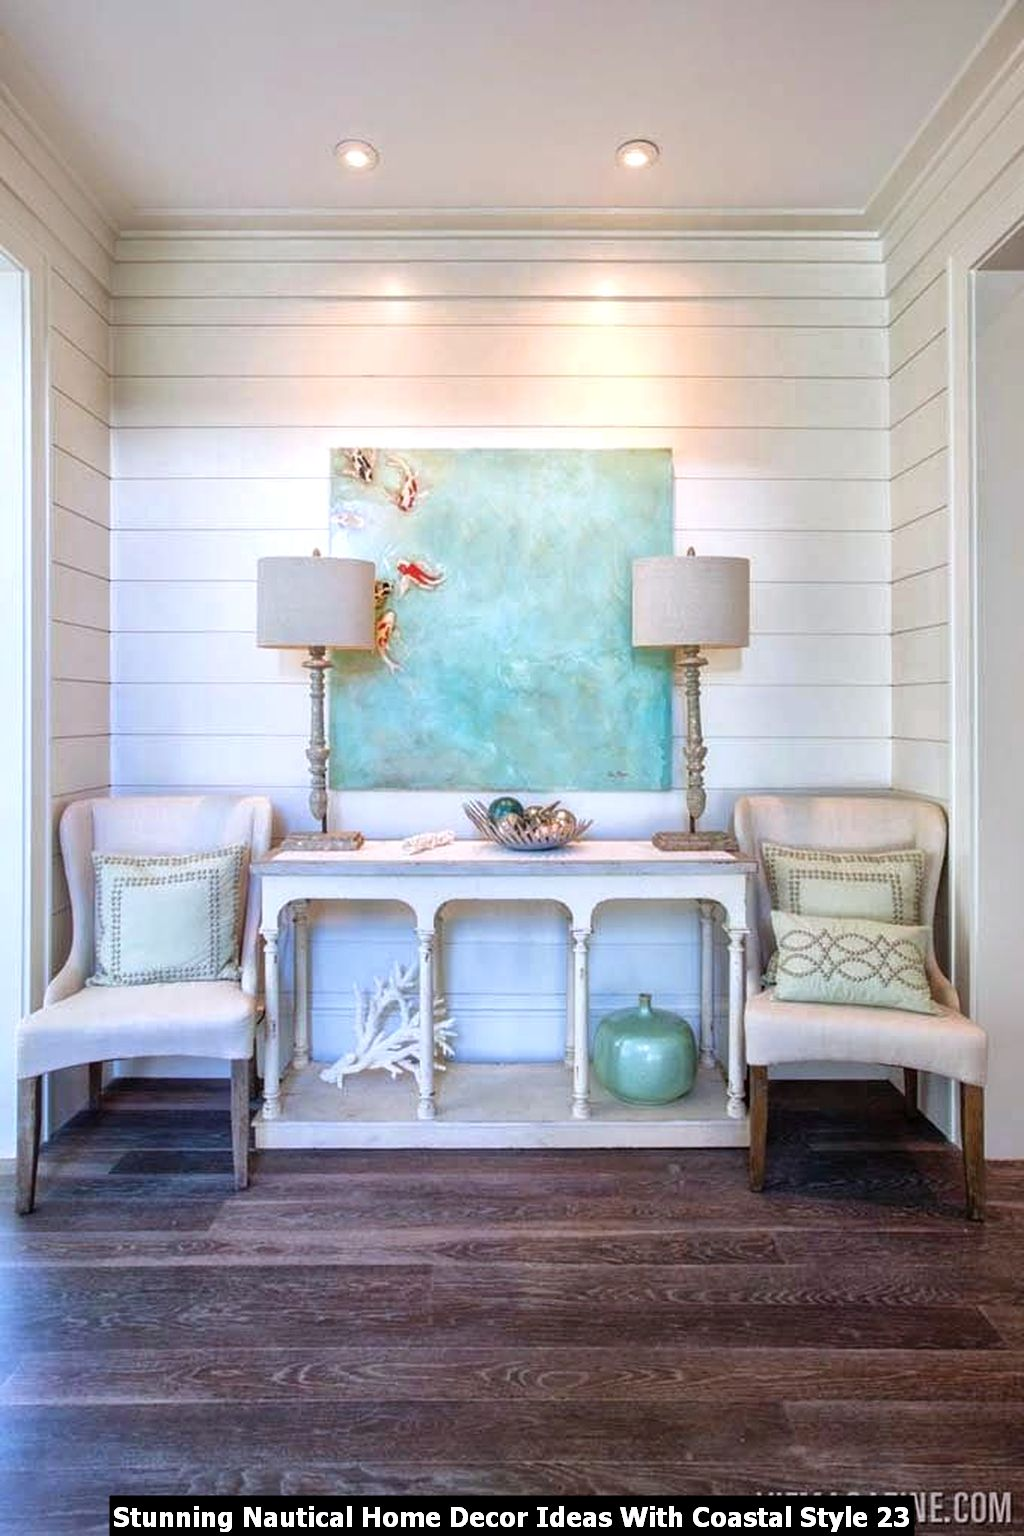 Stunning Nautical Home Decor Ideas With Coastal Style 23